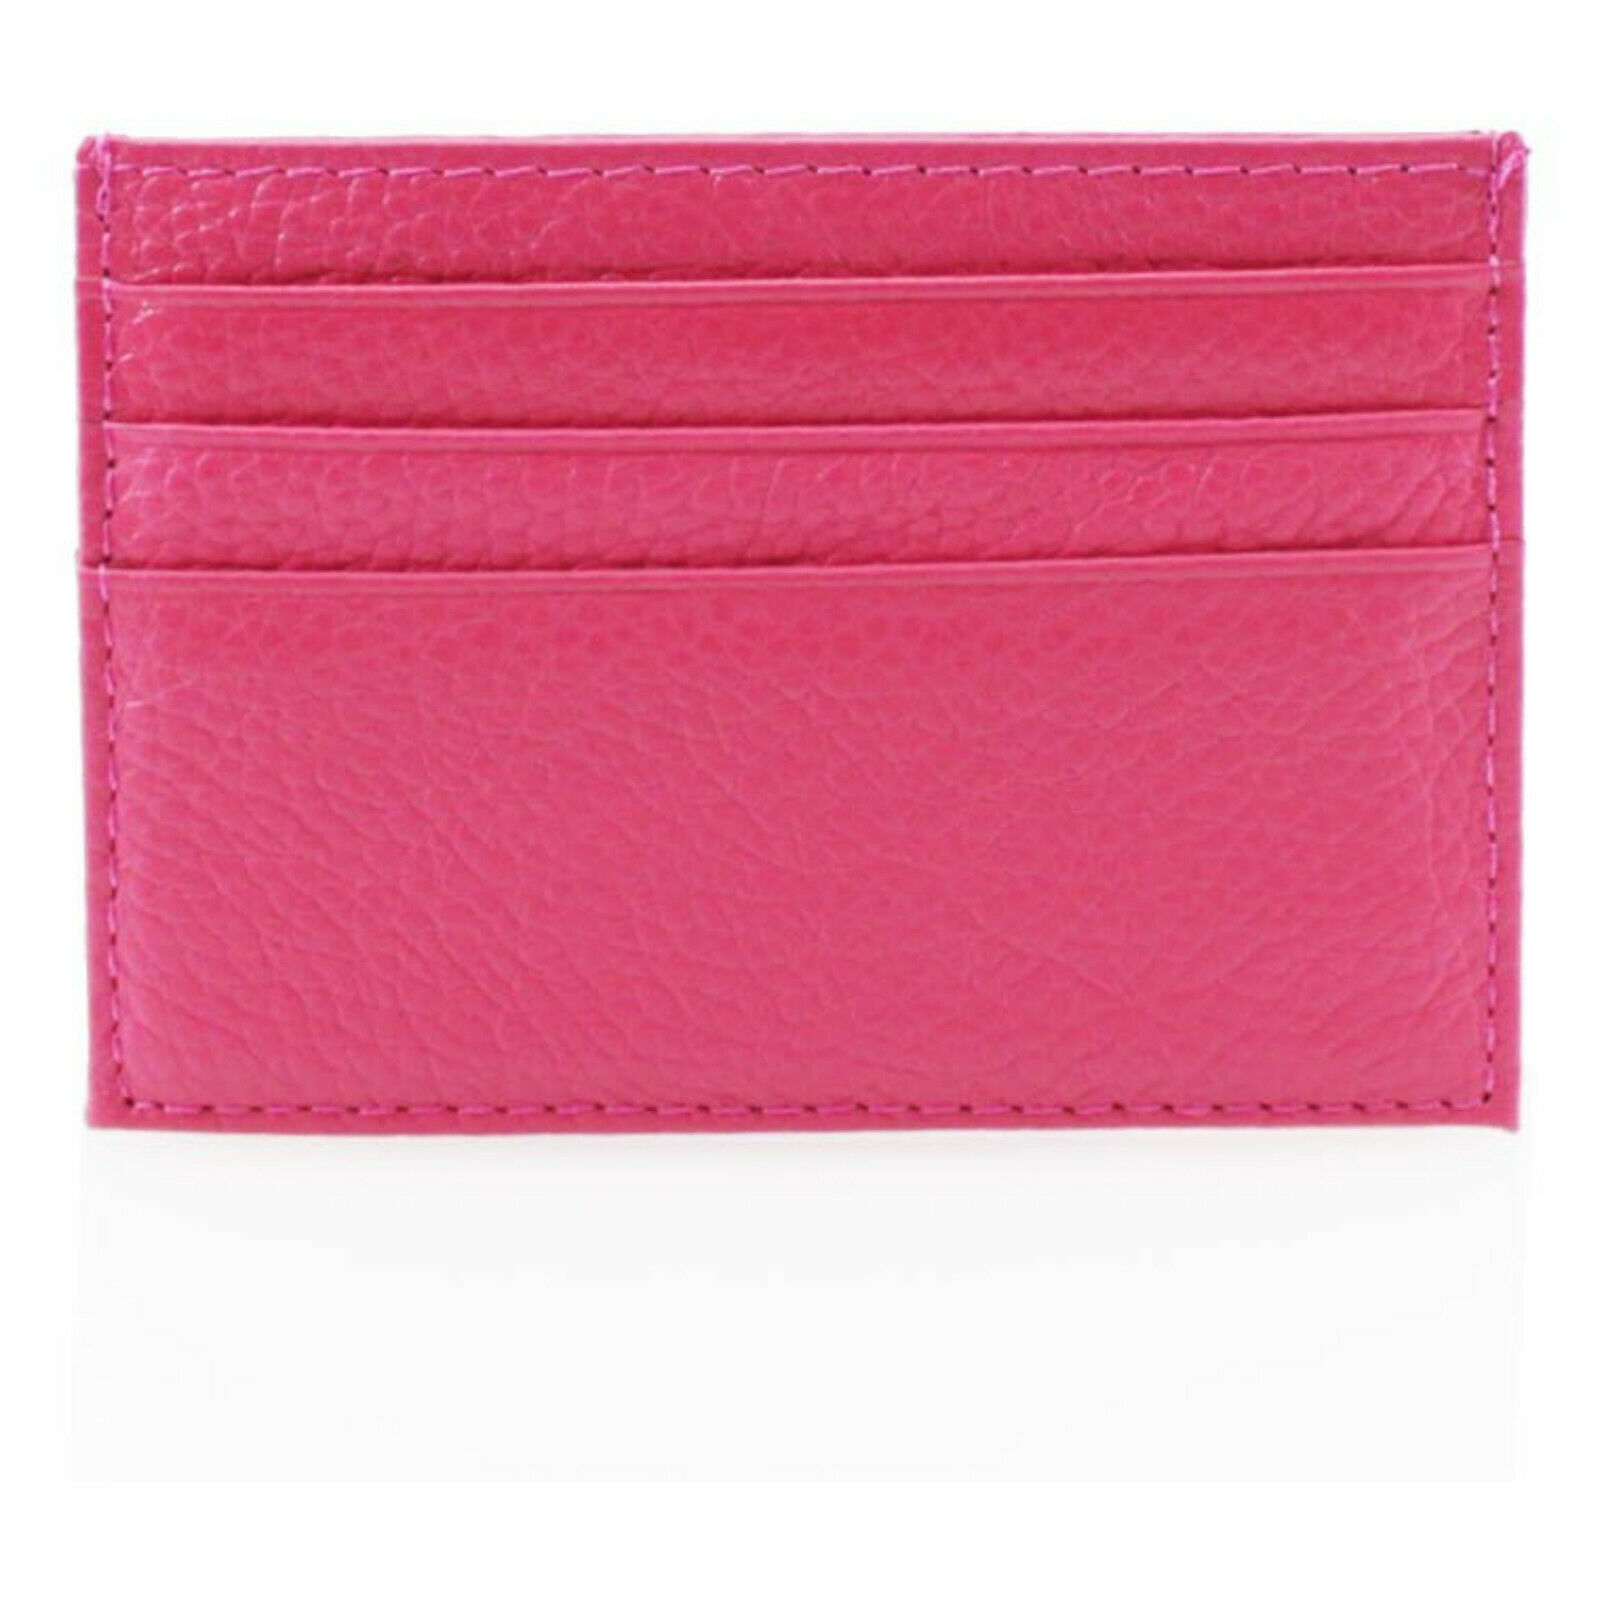 Ladies Unisex Compact CH111 Small Slim Leather Card Holder Multiple Card Slots